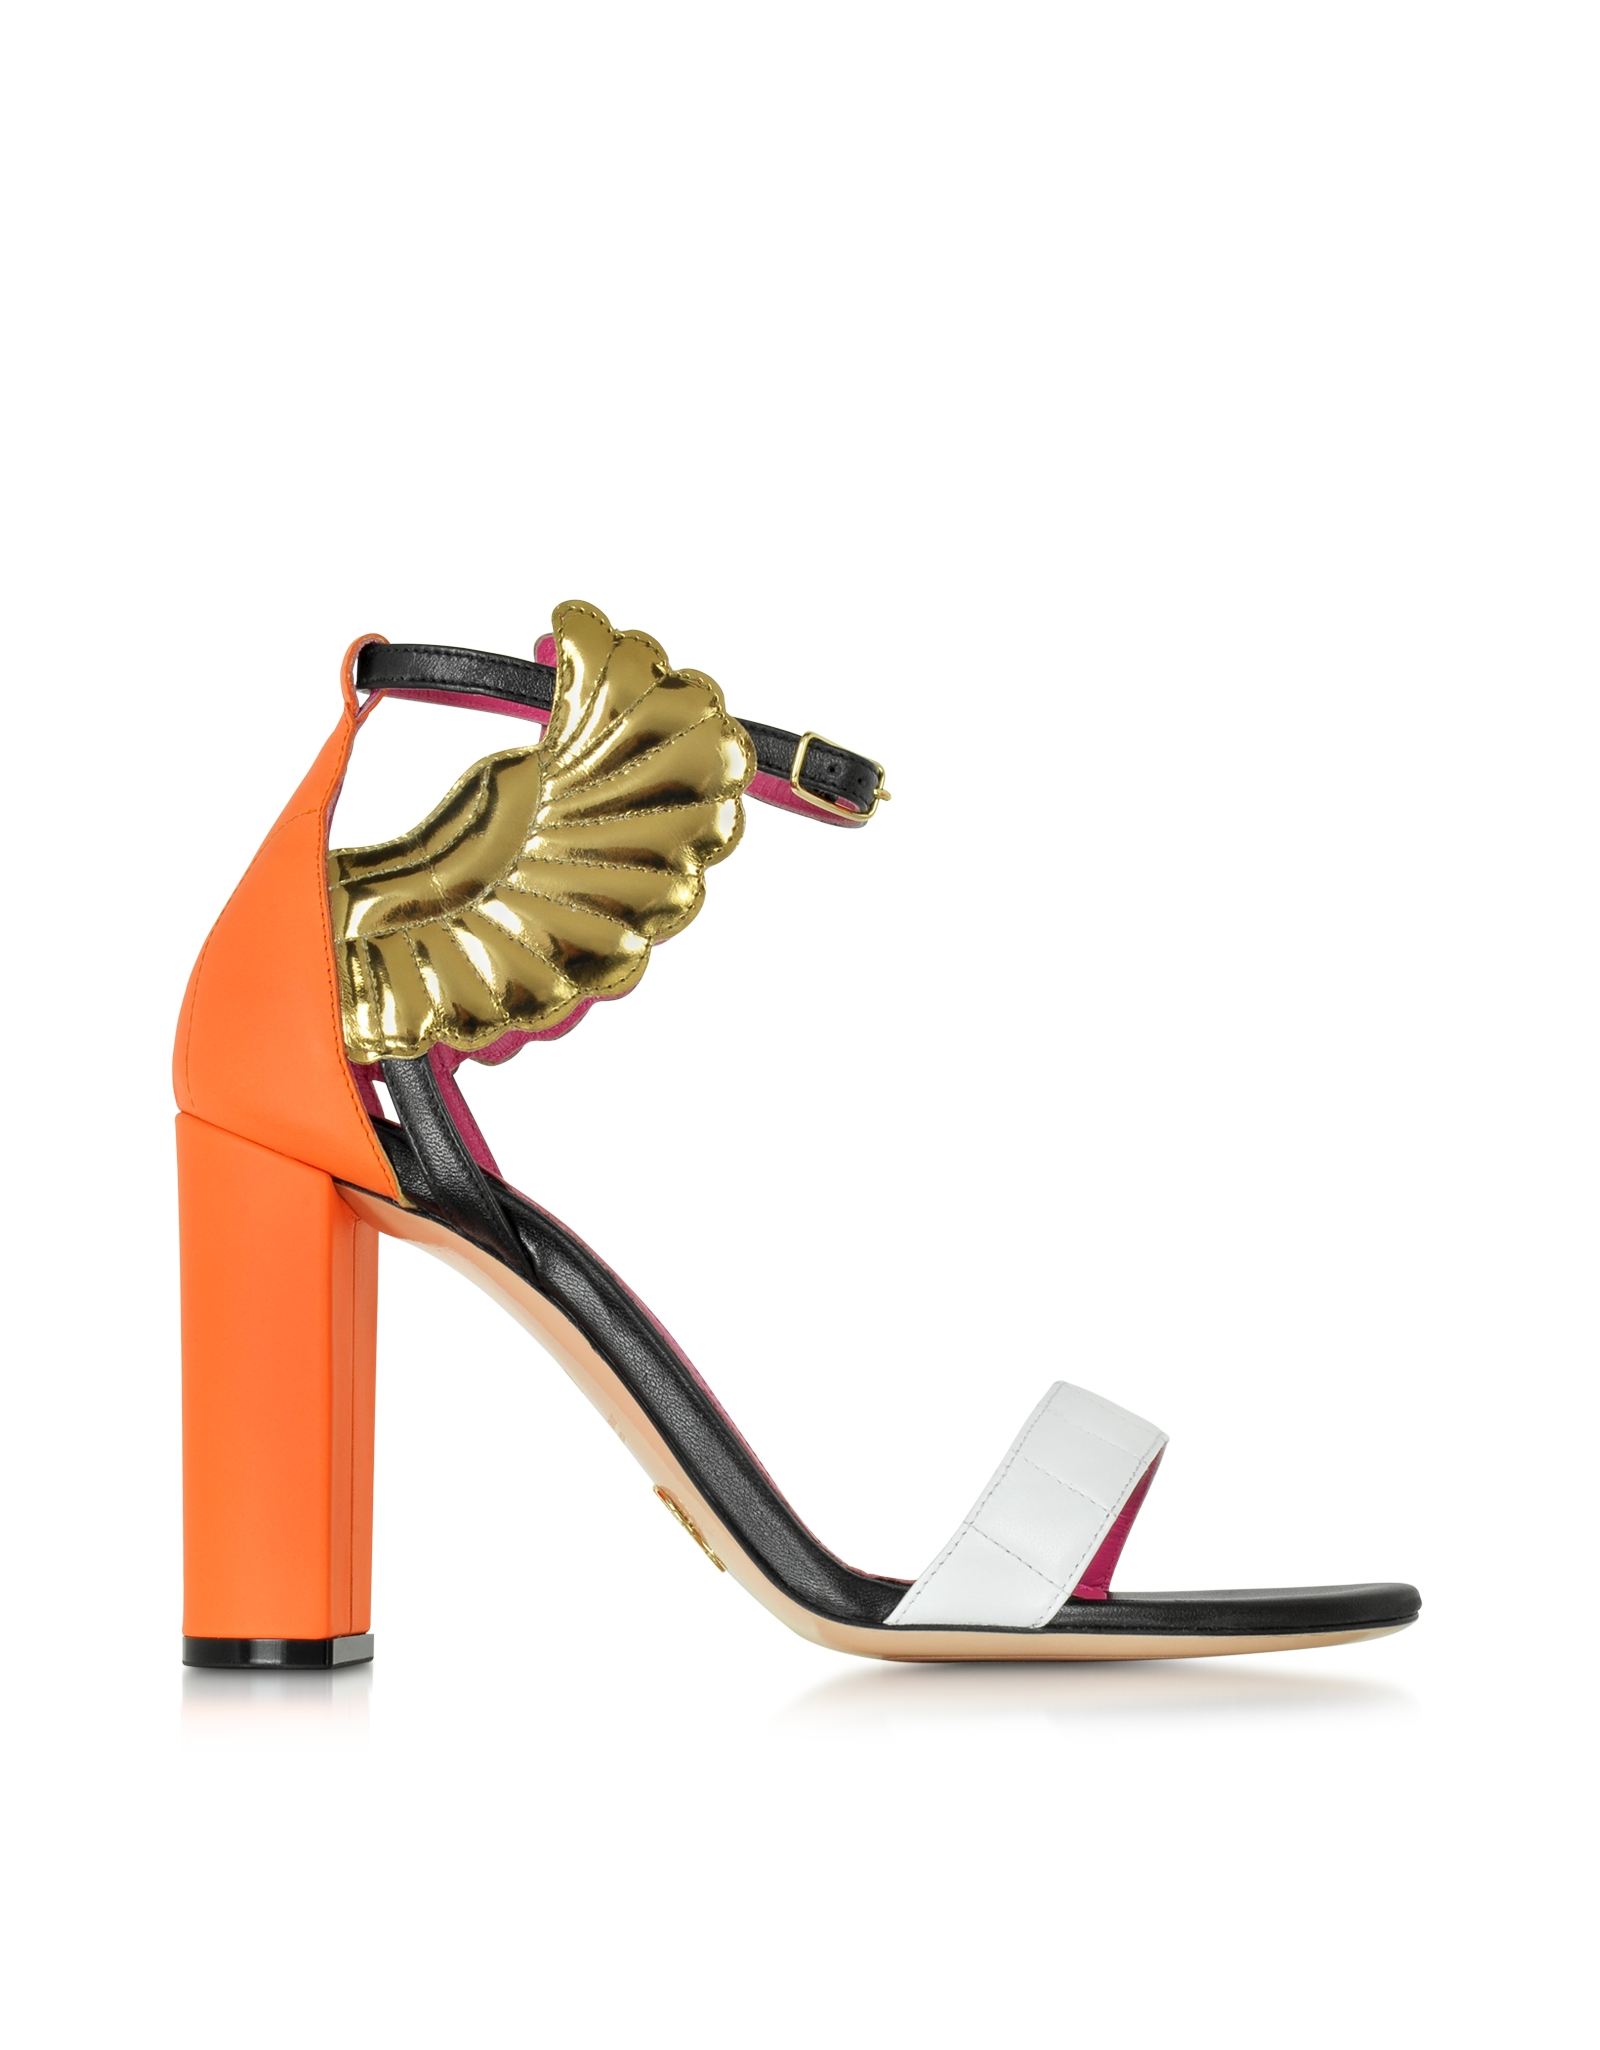 colour-block sandals - Multicolour Oscar Tiye 9C2YBHVdq